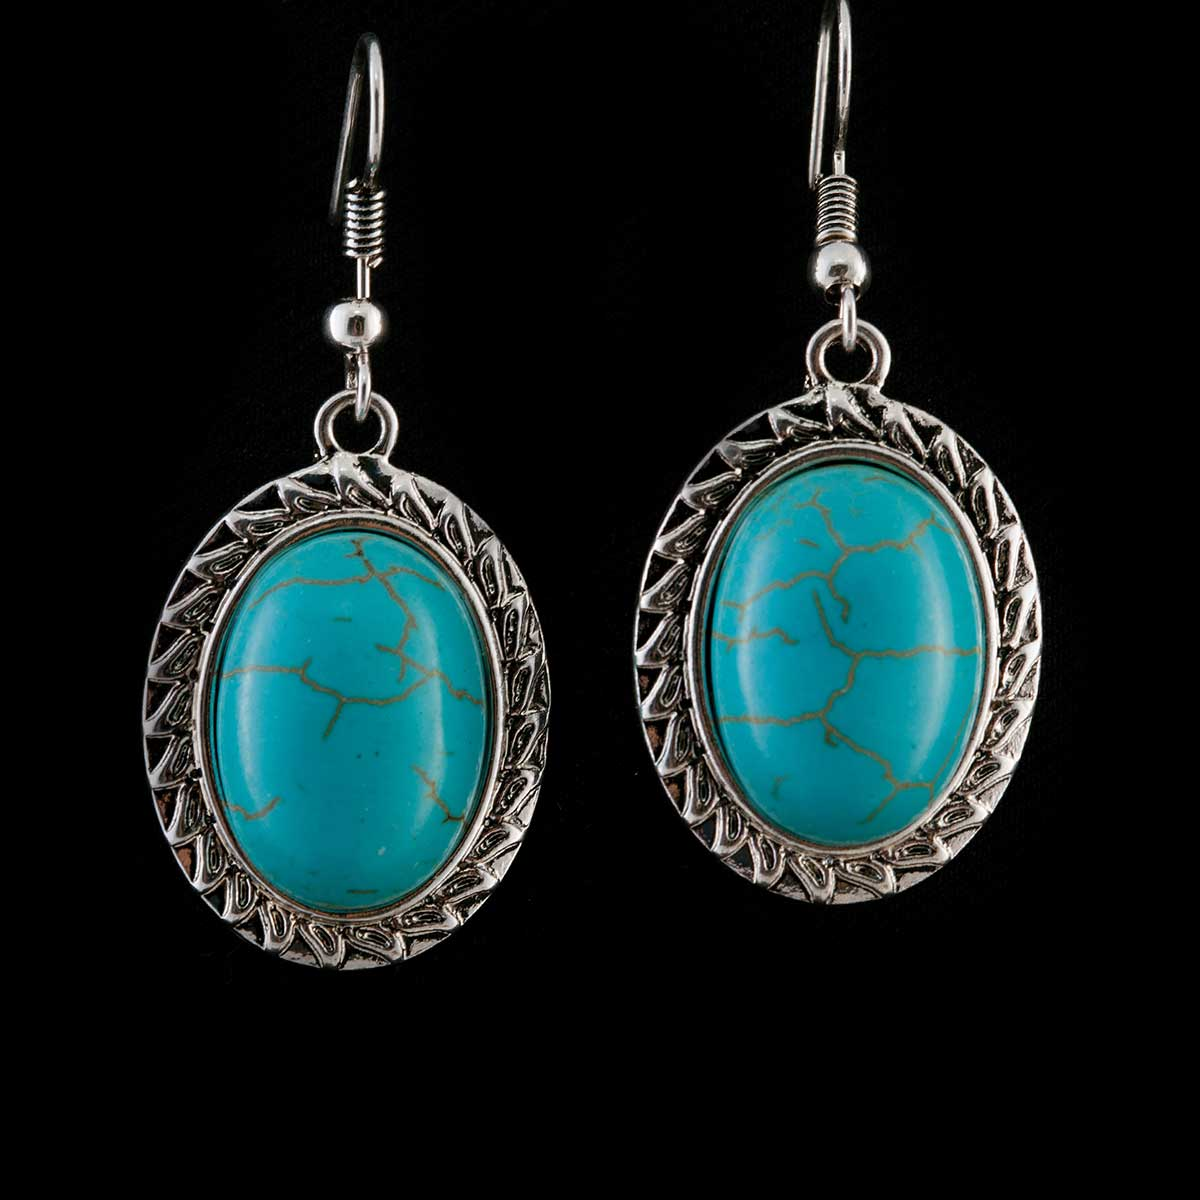 Turquoise Oval Stone Earrings